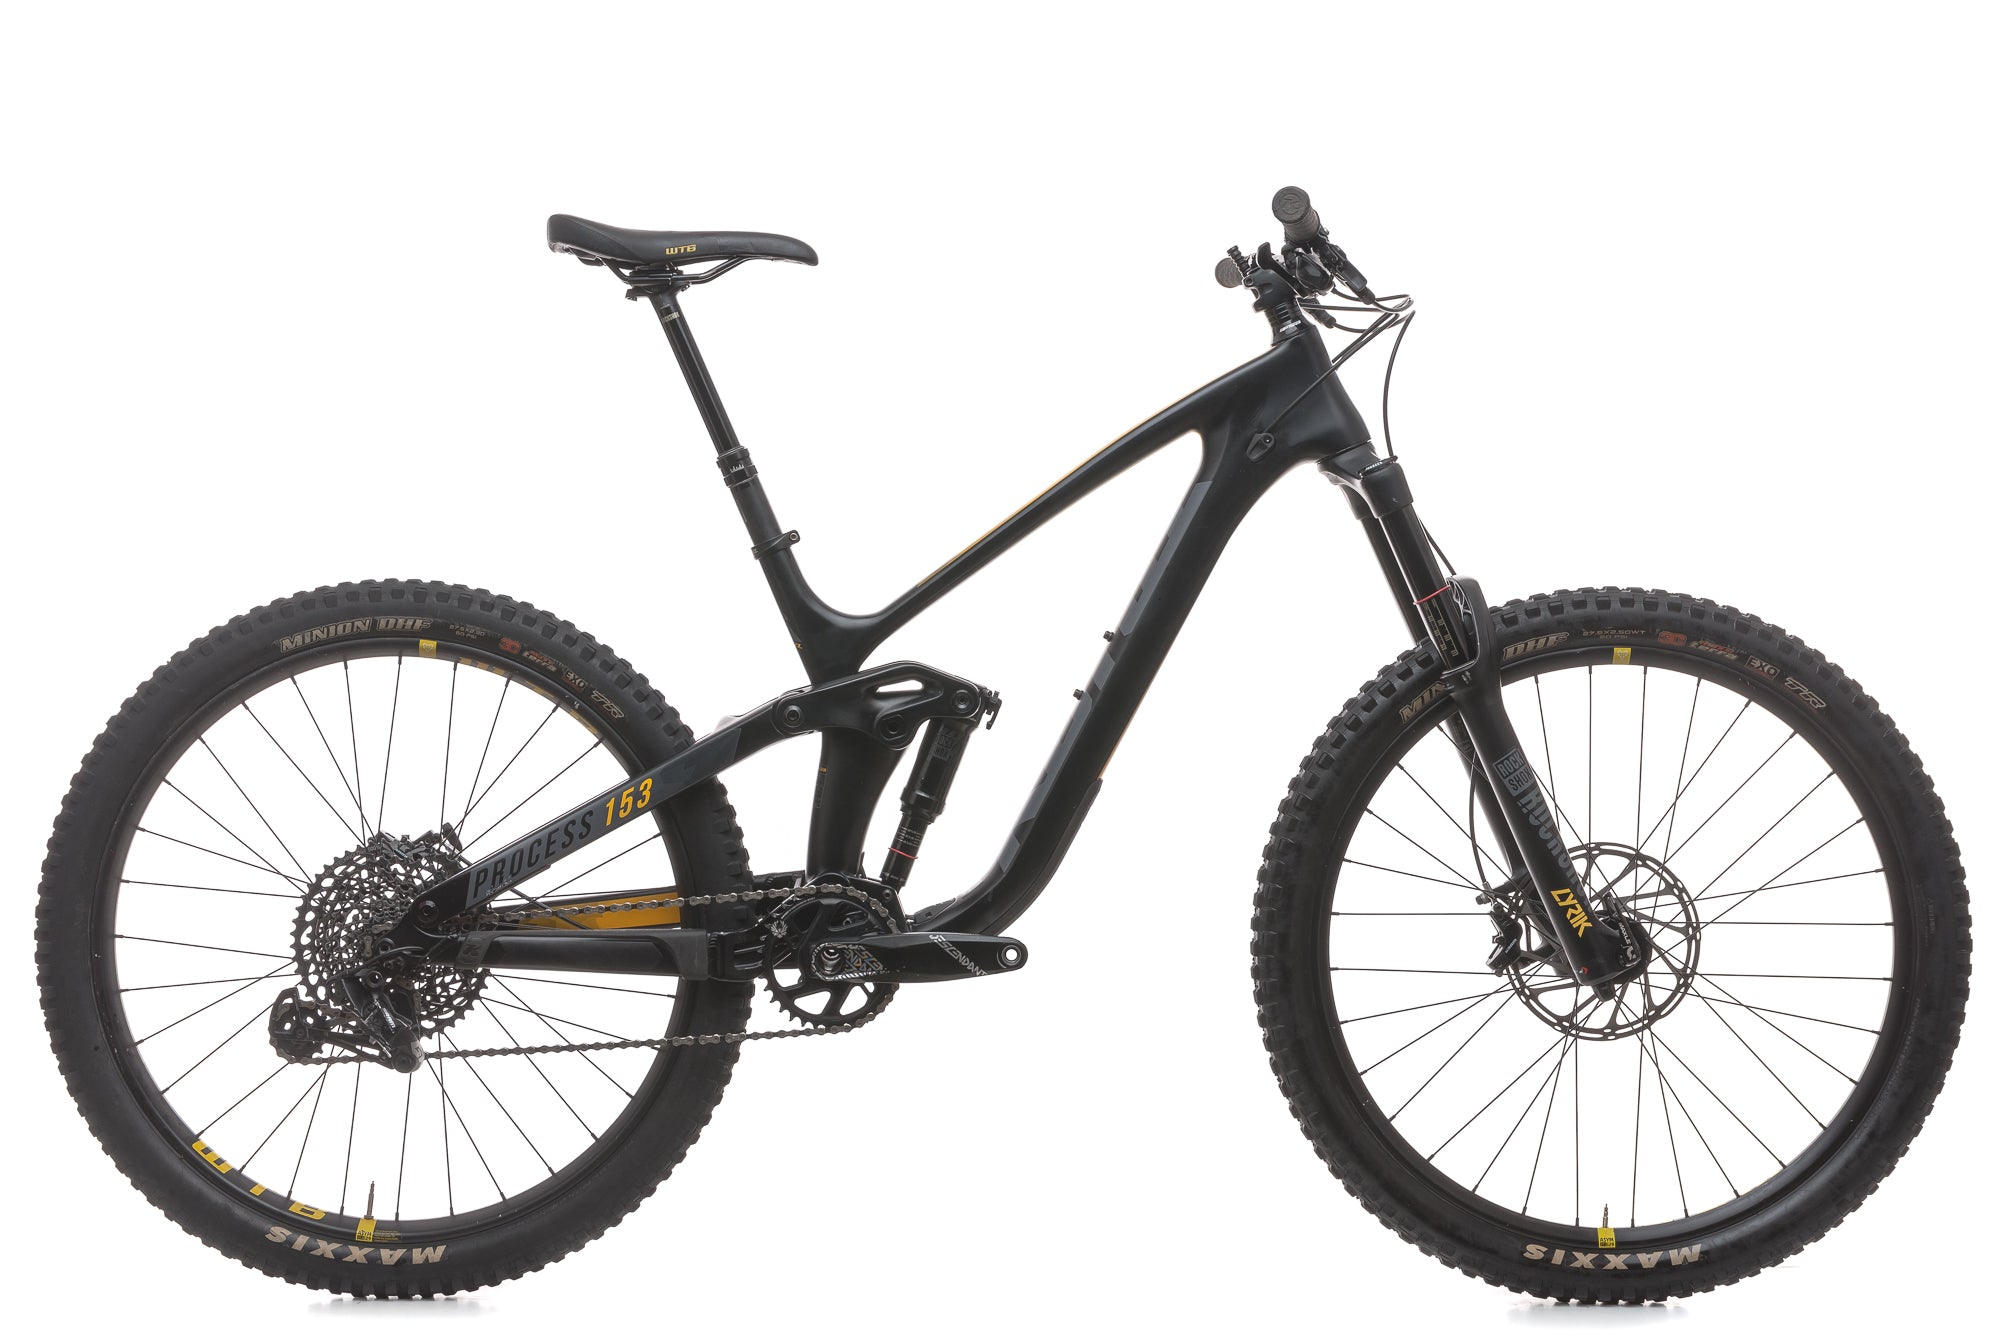 Kona Process 153 CR 27.5 Medium Bike - 2018